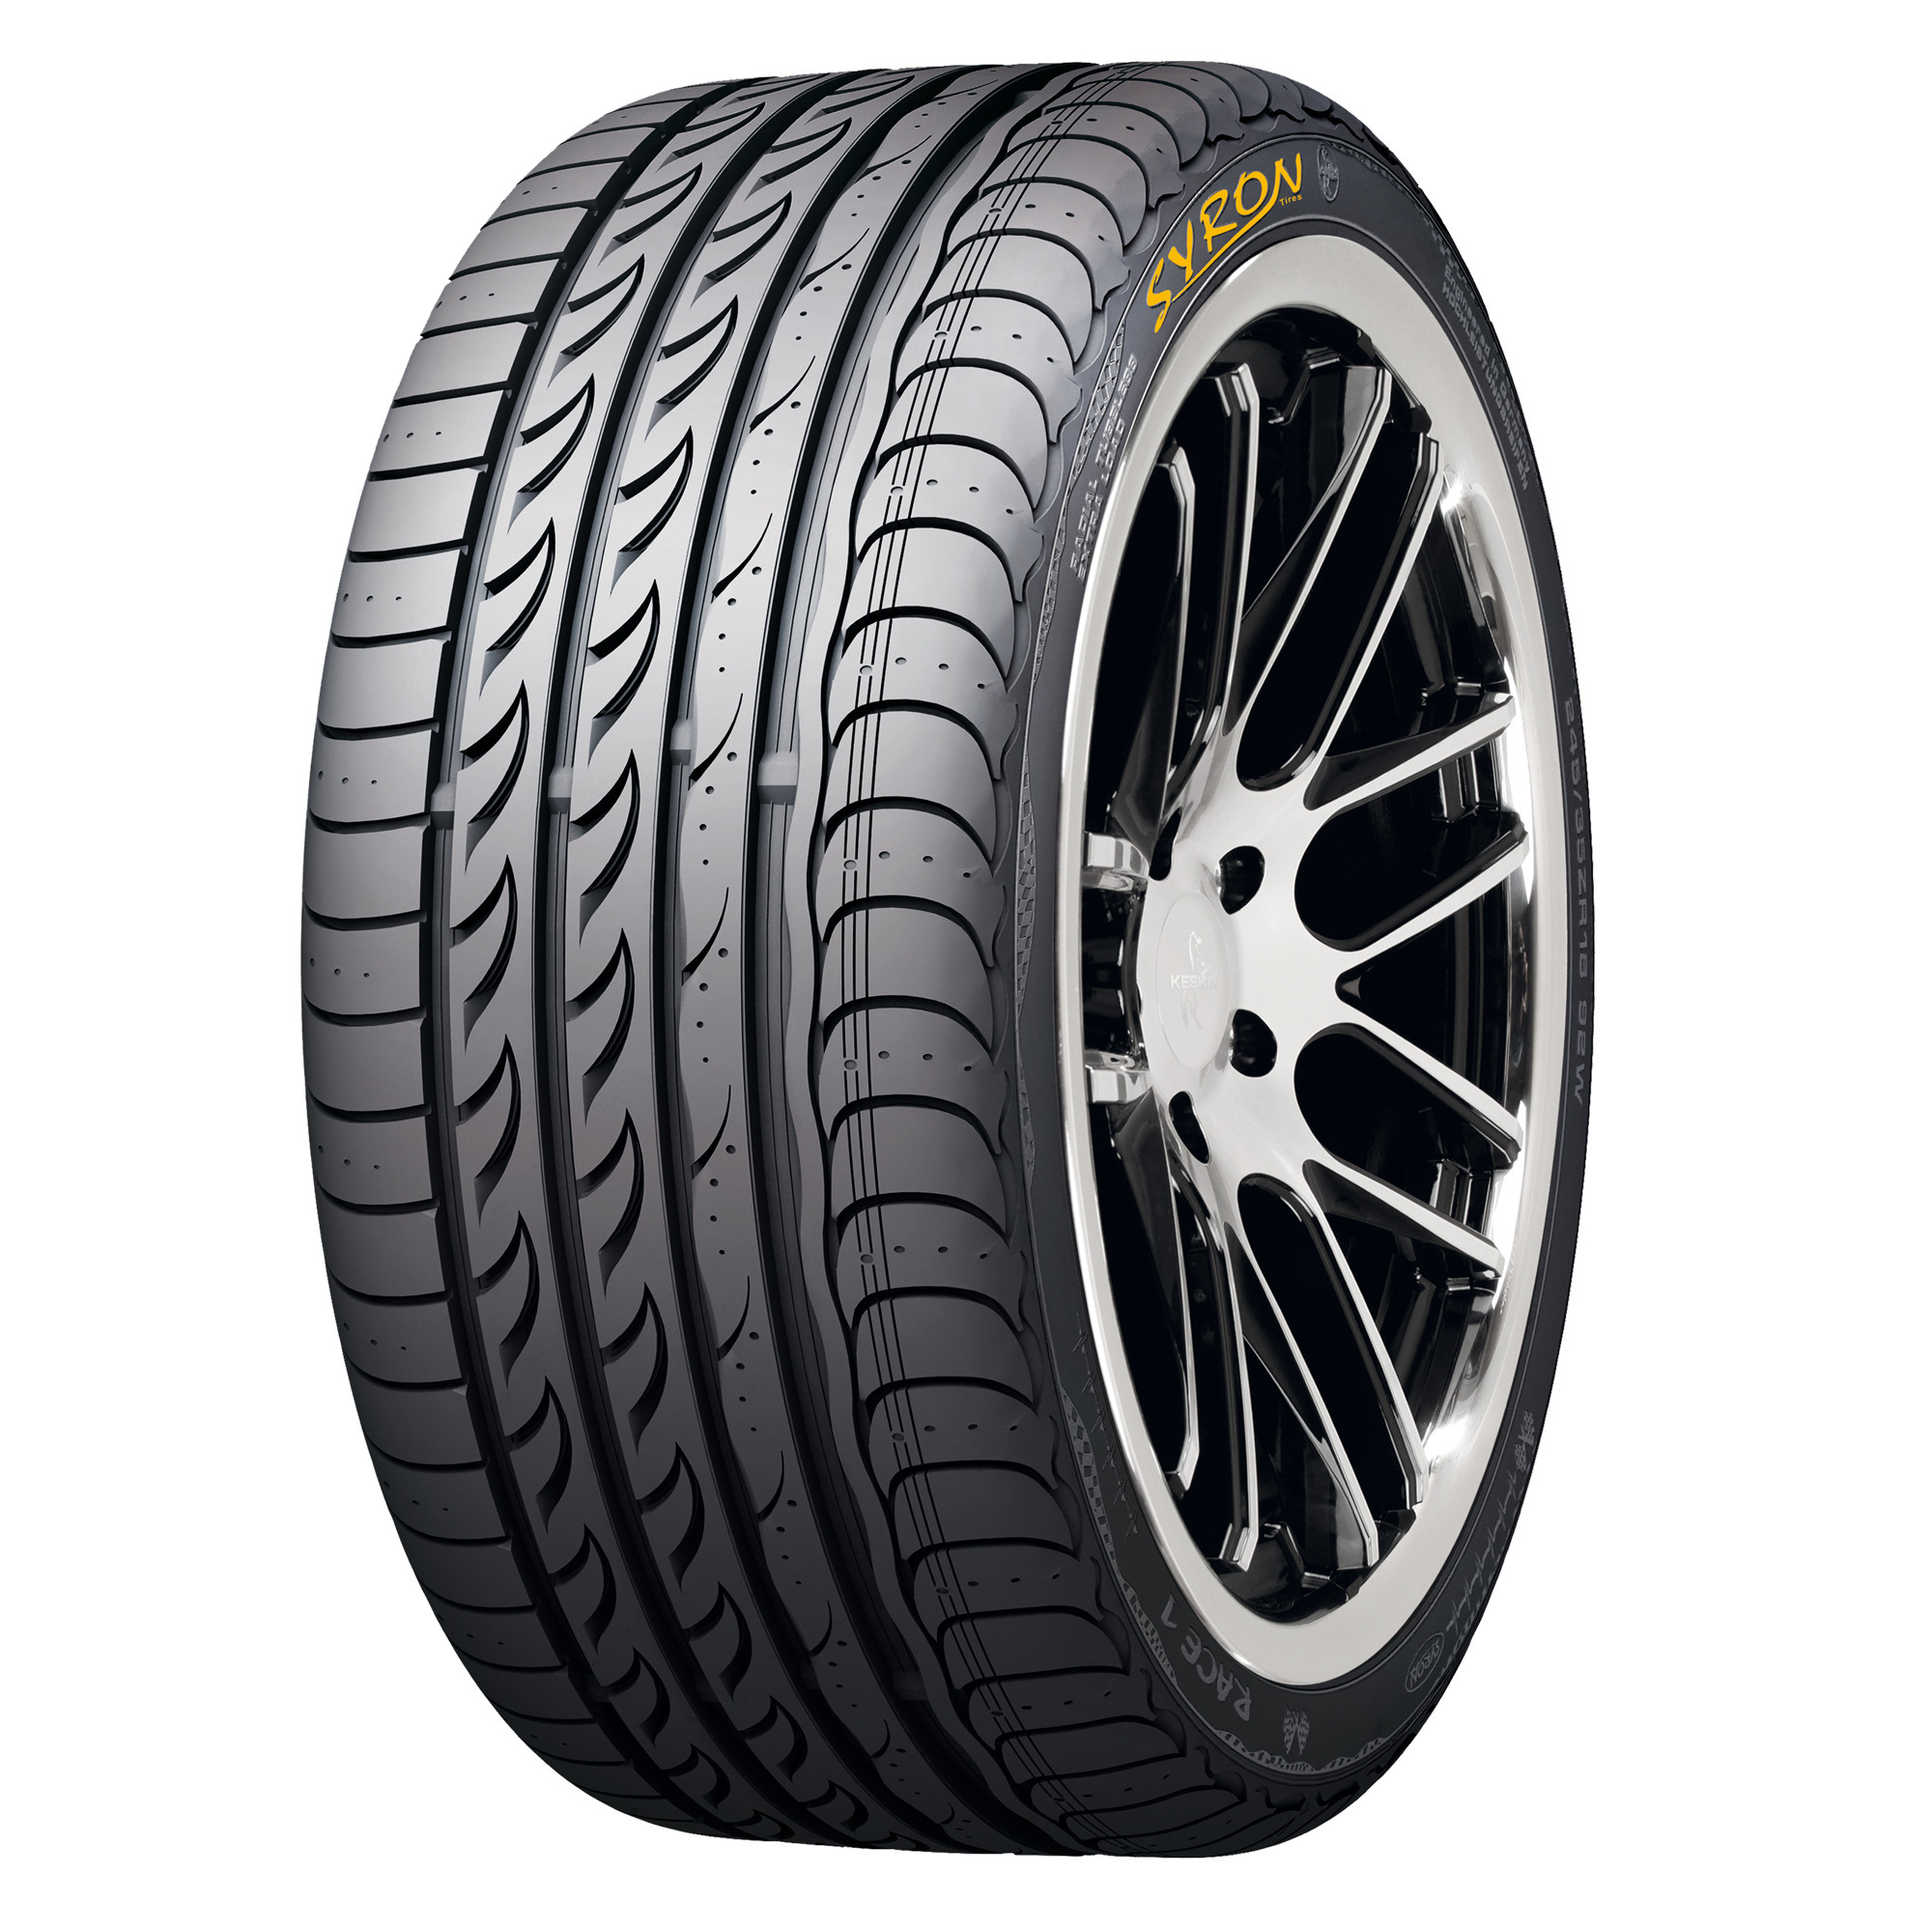 195/60R15 SYRON TIRES RACE1 plus 88V